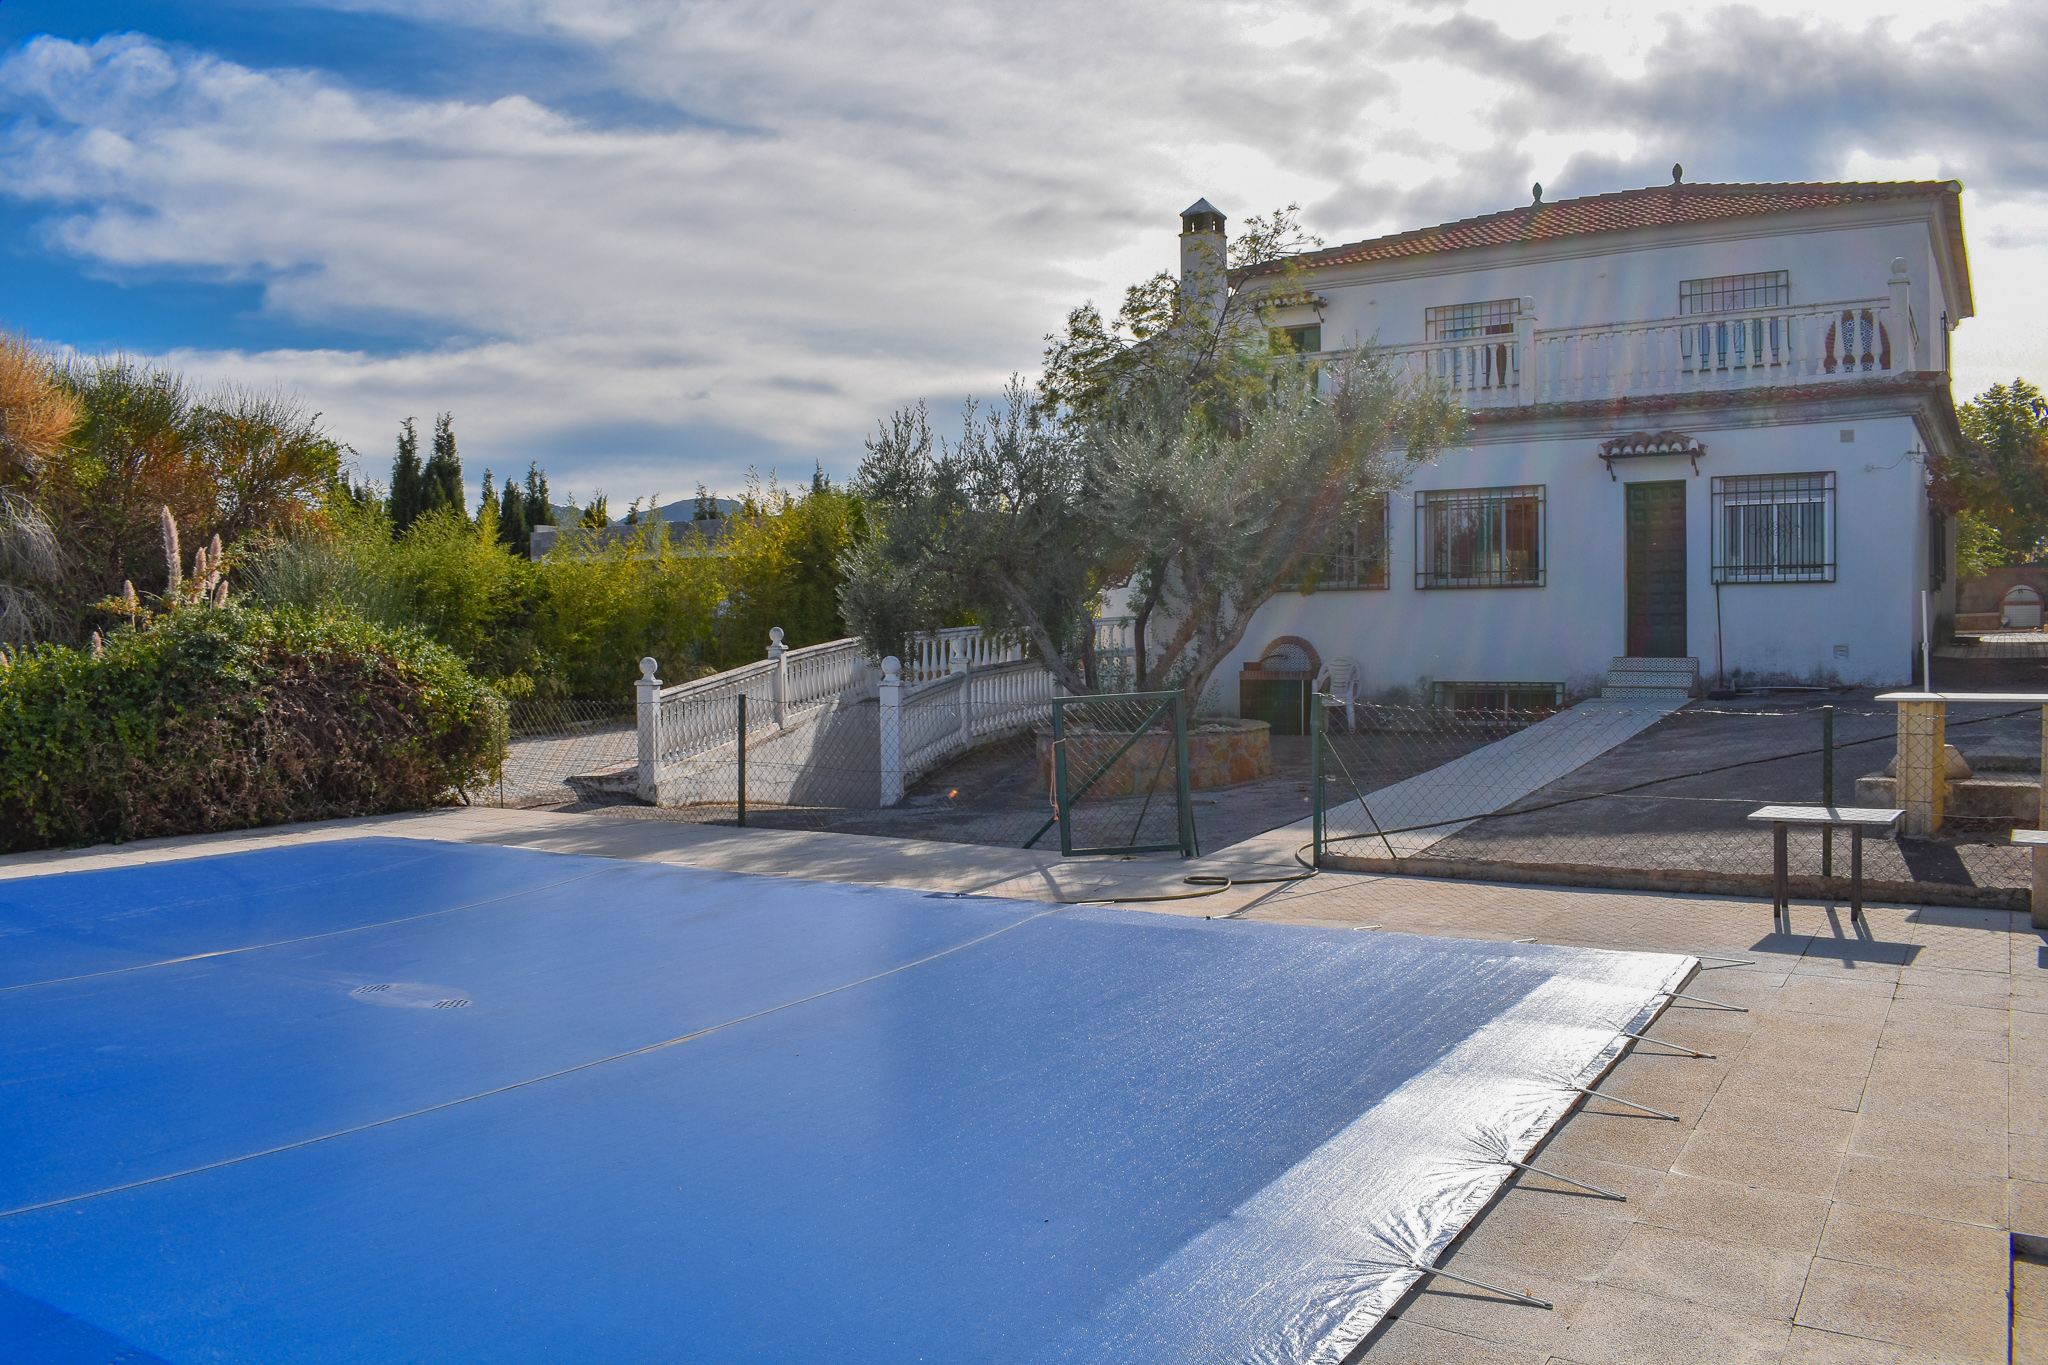 properties for sale in Granada, estate-agency, granada, property-for-sale, real-estate, se-vende,villa